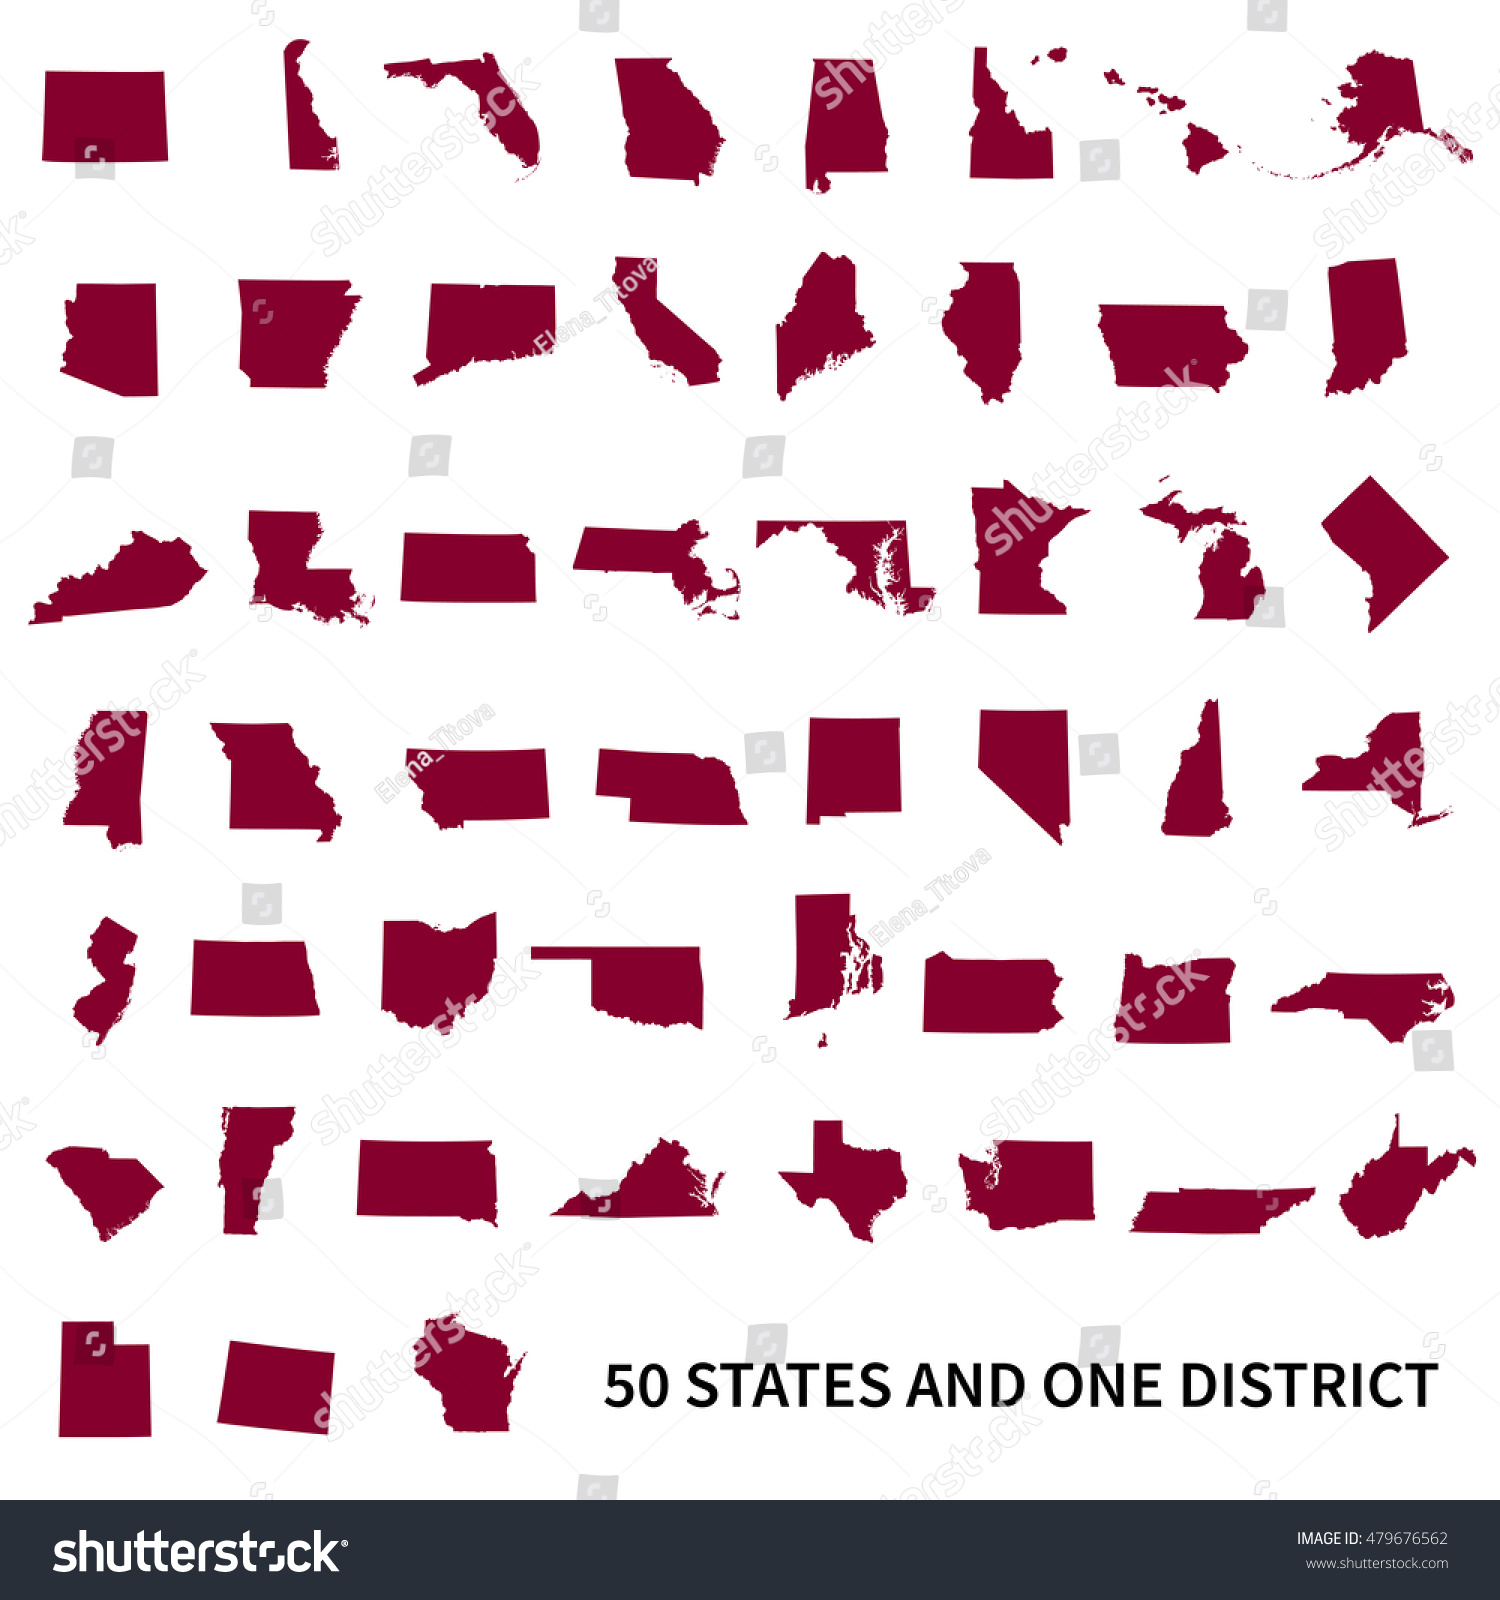 Blank States Map Salt Palace Map - Show me the united states of america